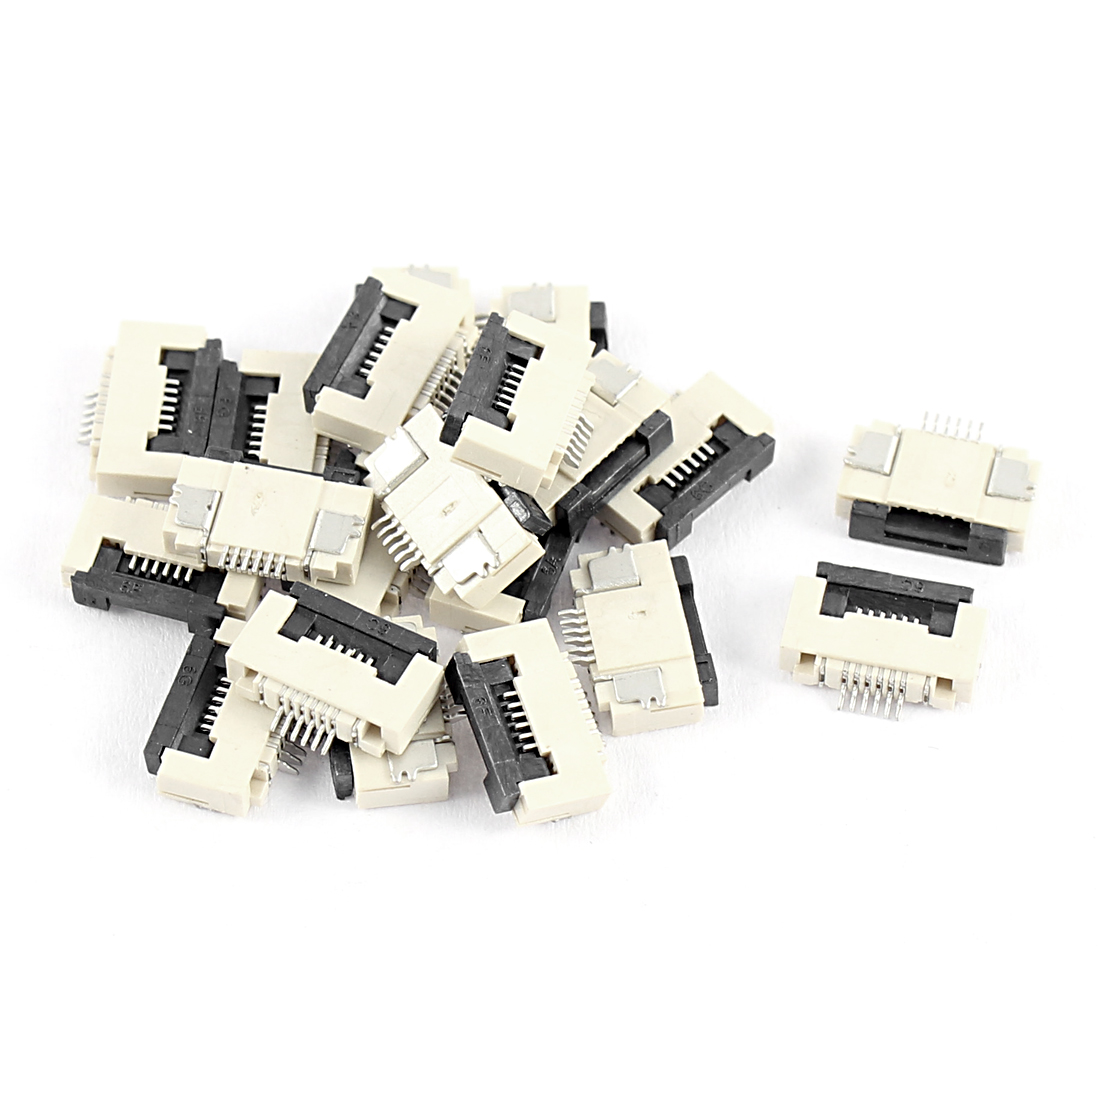 20Pcs Clamshell Type Bottom Port 6Pin 0.5mm Pitch FFC FPC Sockets Connector